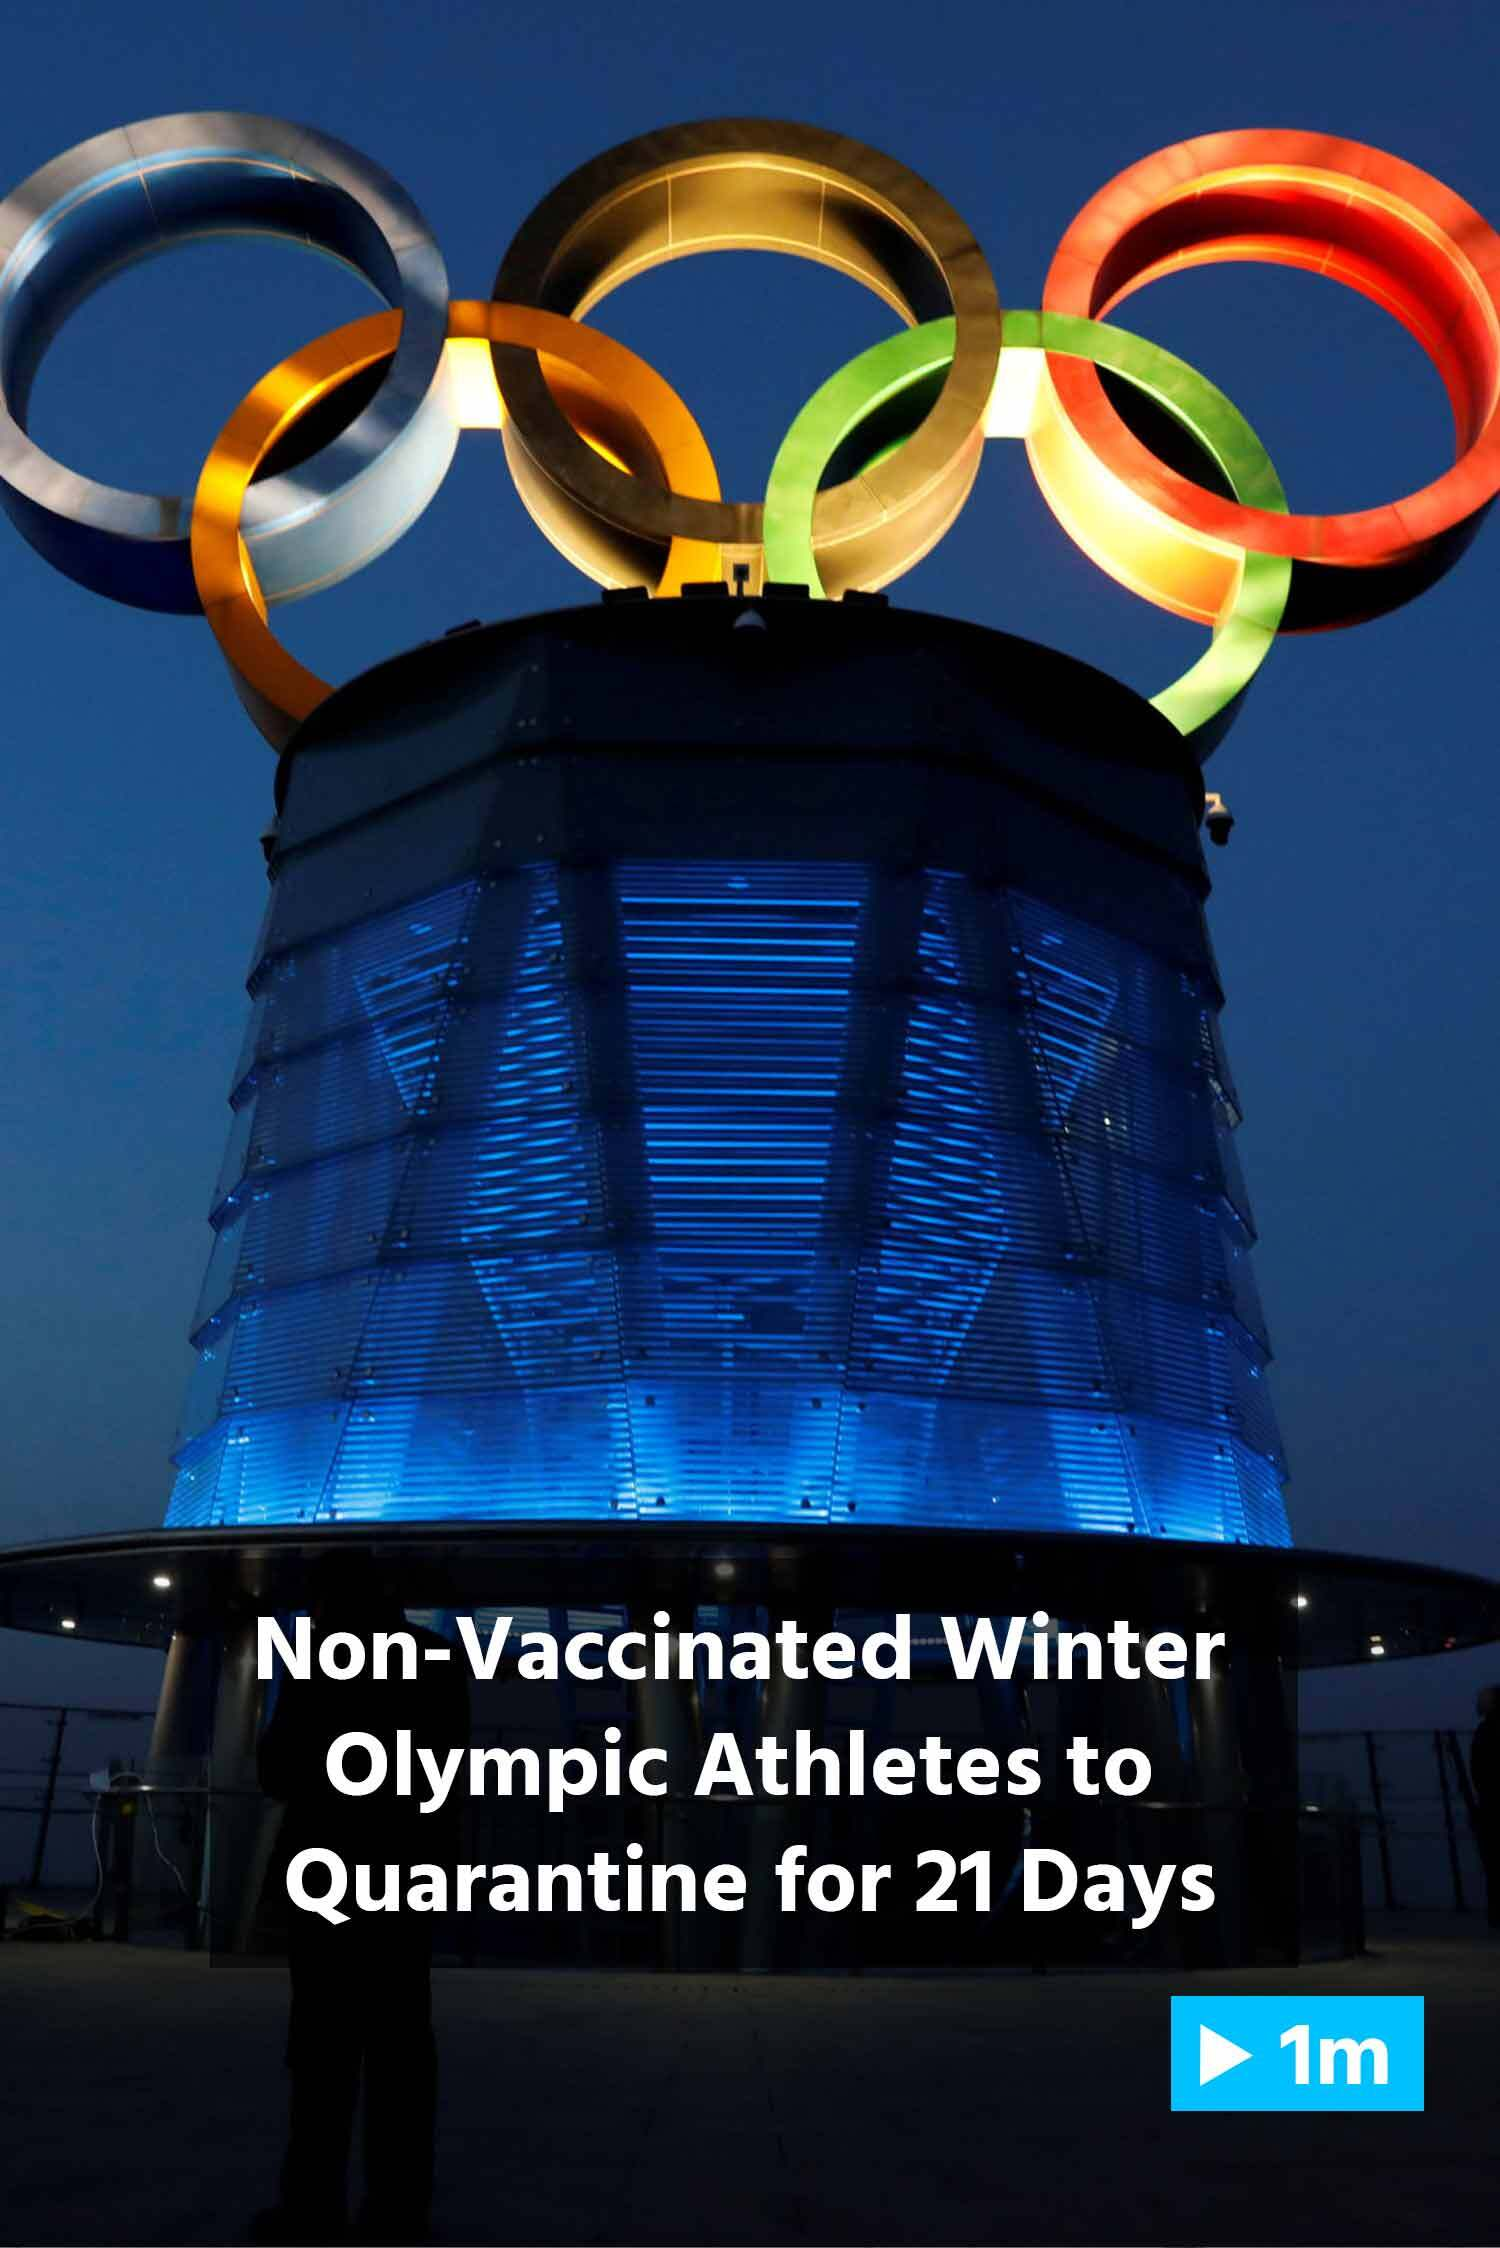 Reuters Report: Non-Vaccinated Winter Olympic Athletes To Quarantine For 21 Days